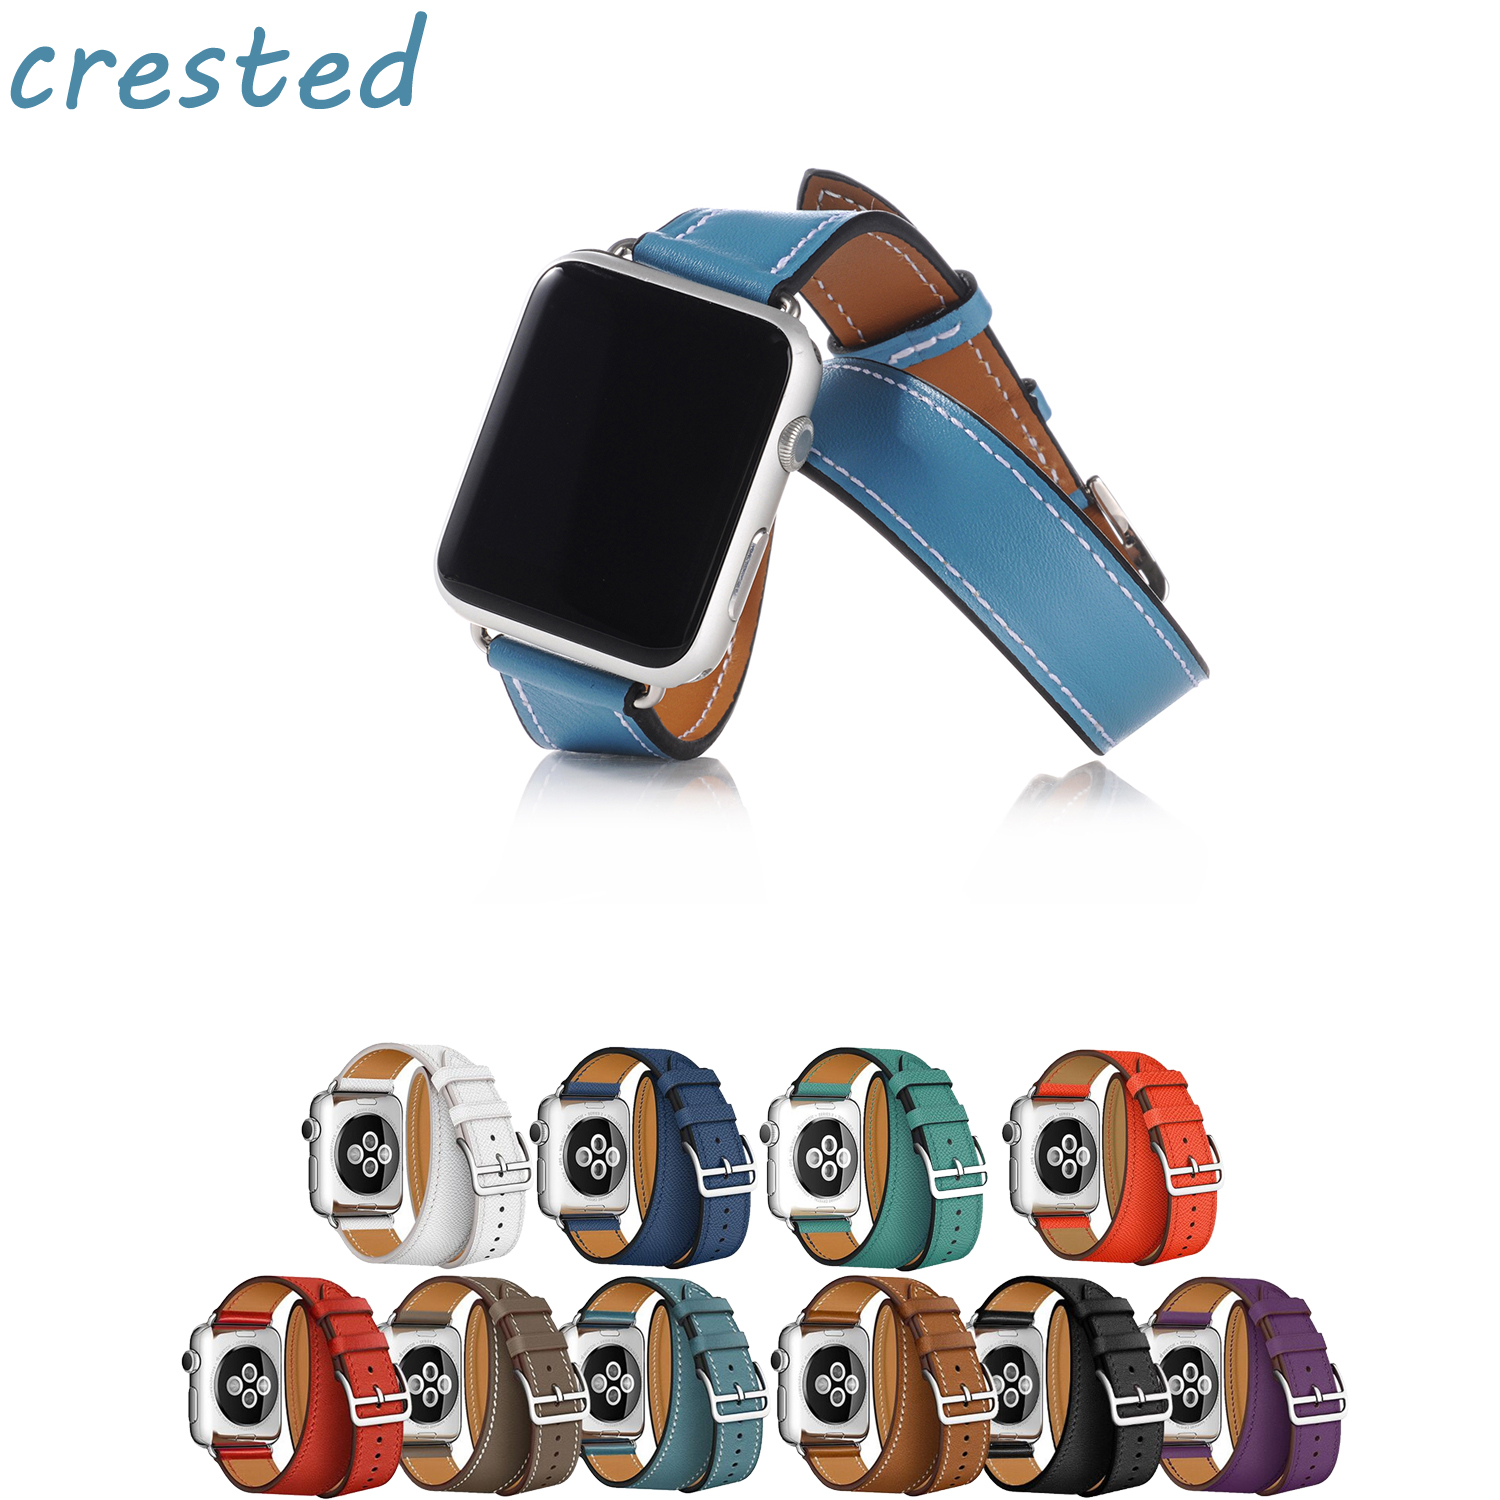 CRESTED Genuine Leather watch band for apple watch 3 42mm 38mm strap bracelet for iwatch Hermes 3/2/1 Double tour clock band crested leather cuff bracelets watch band for apple watch hermes bracelet 38mm 42mm